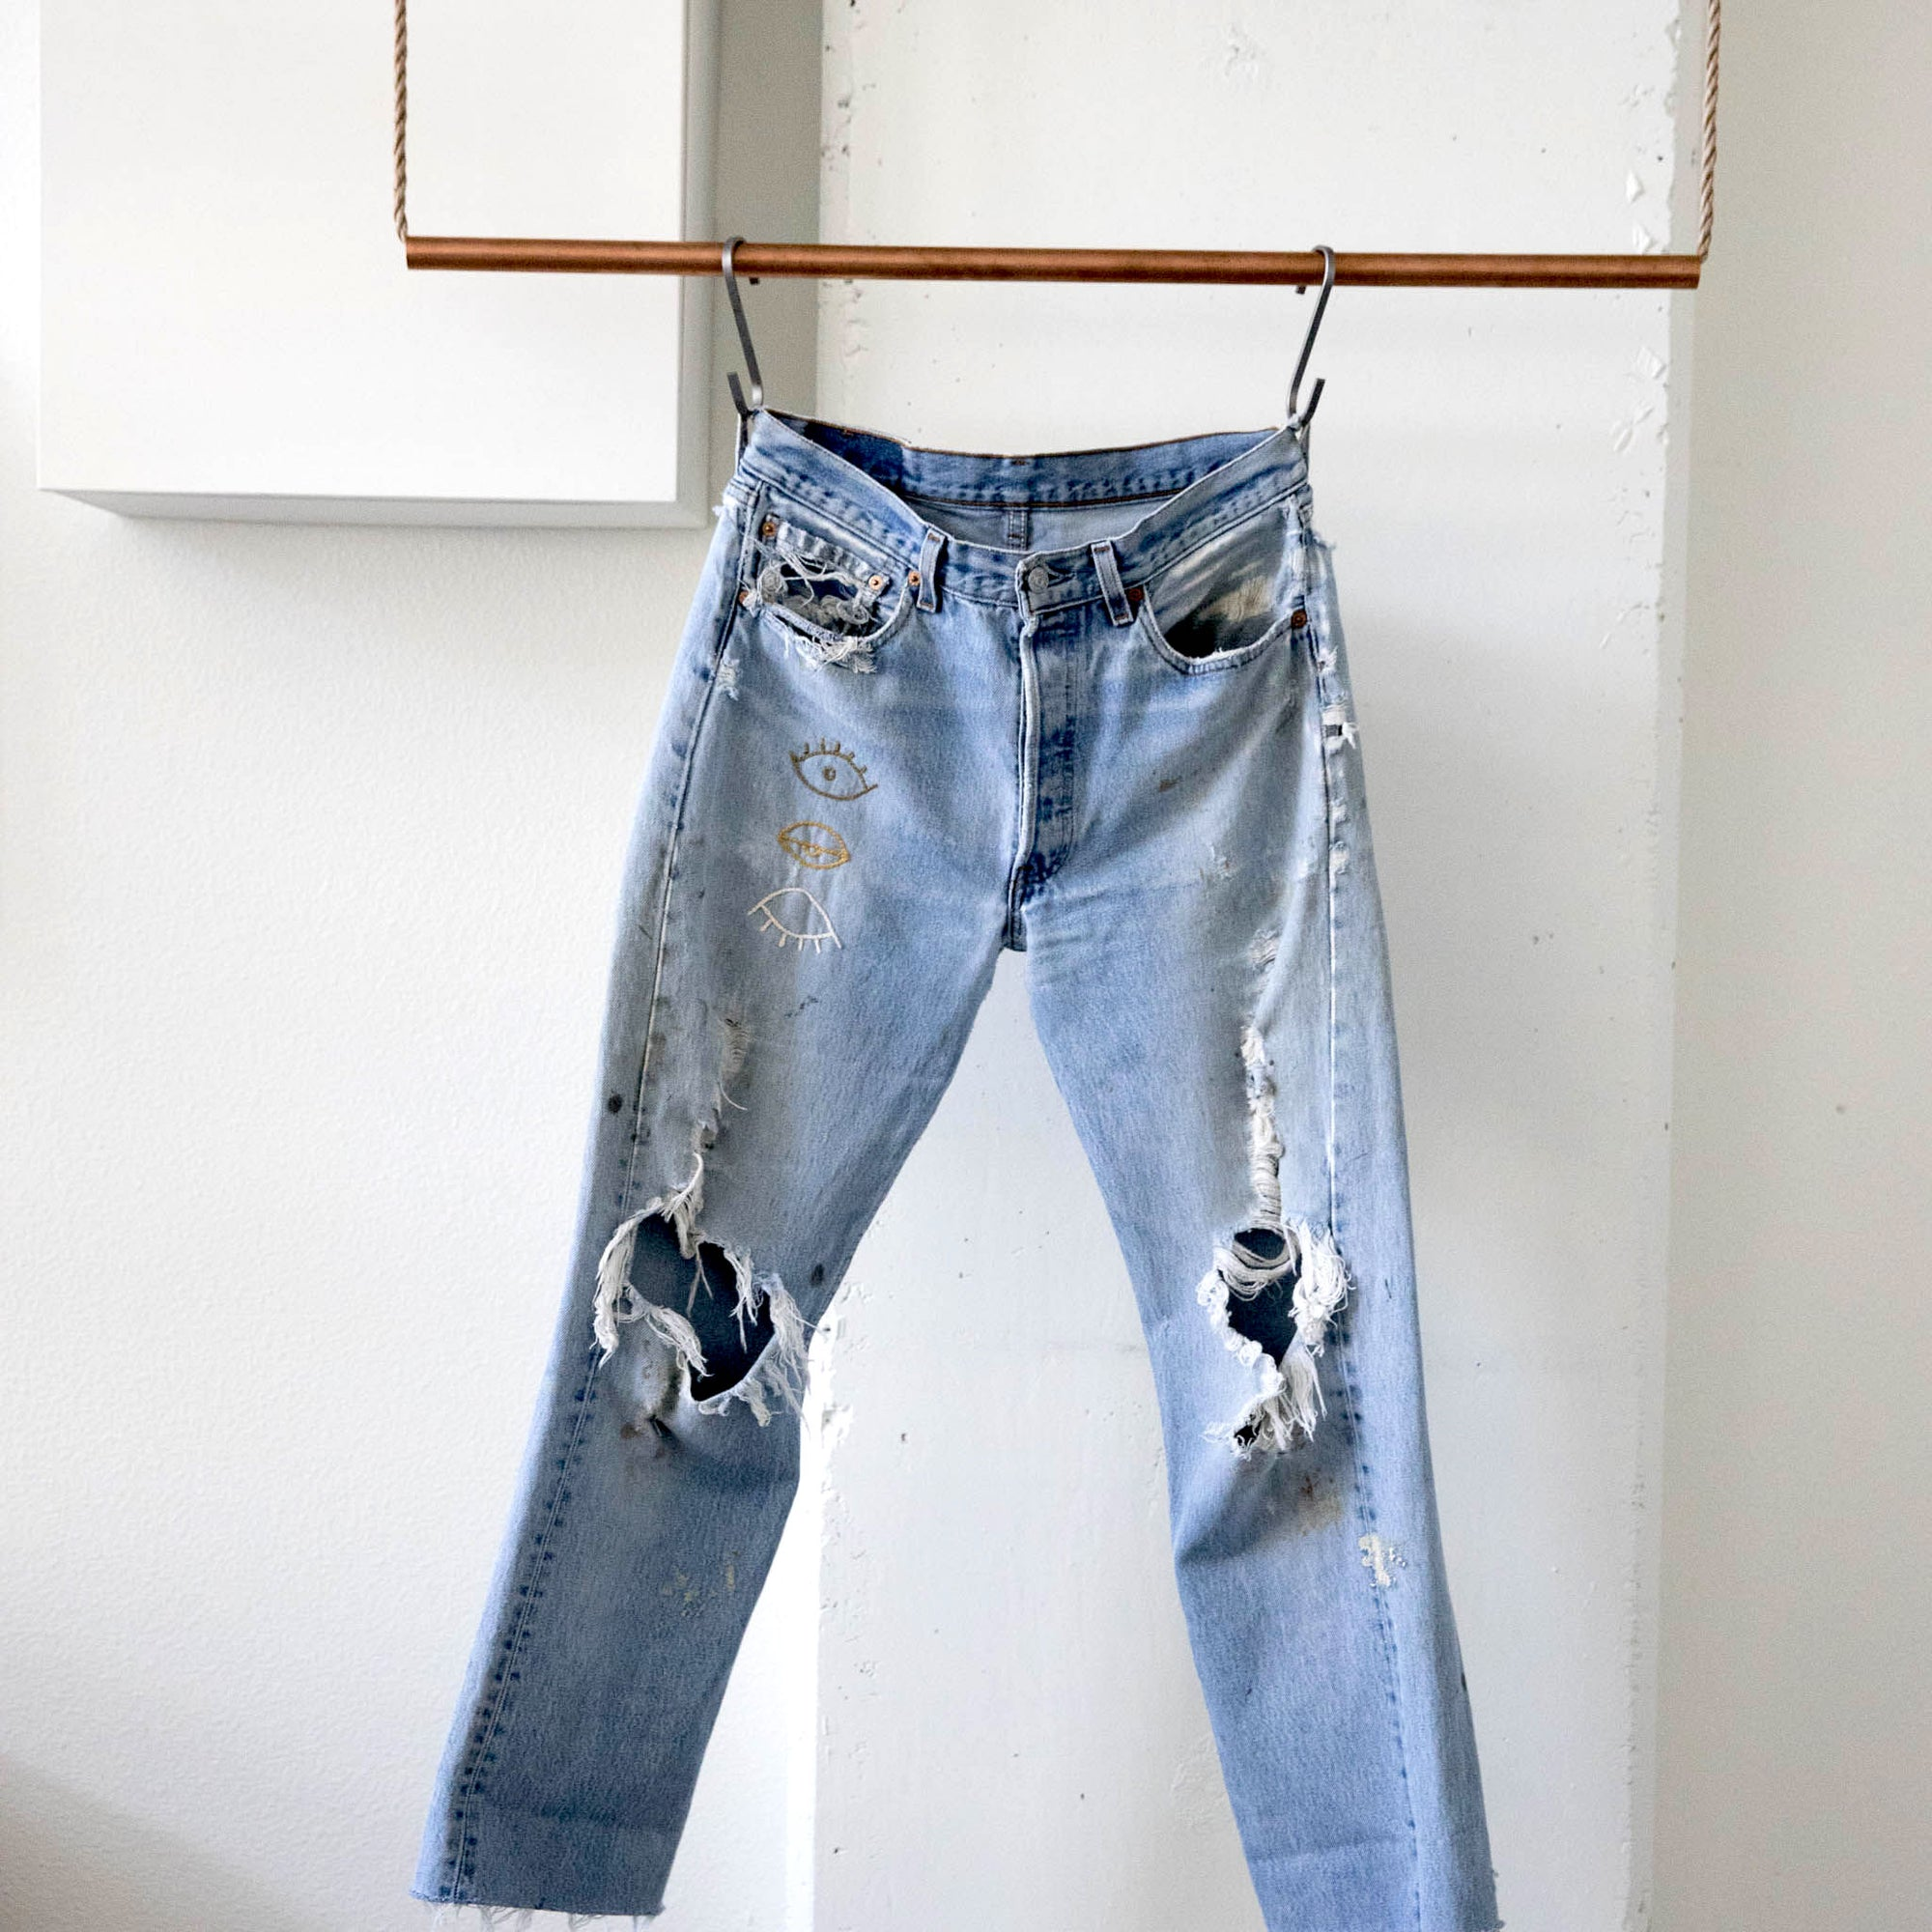 CURA Denim